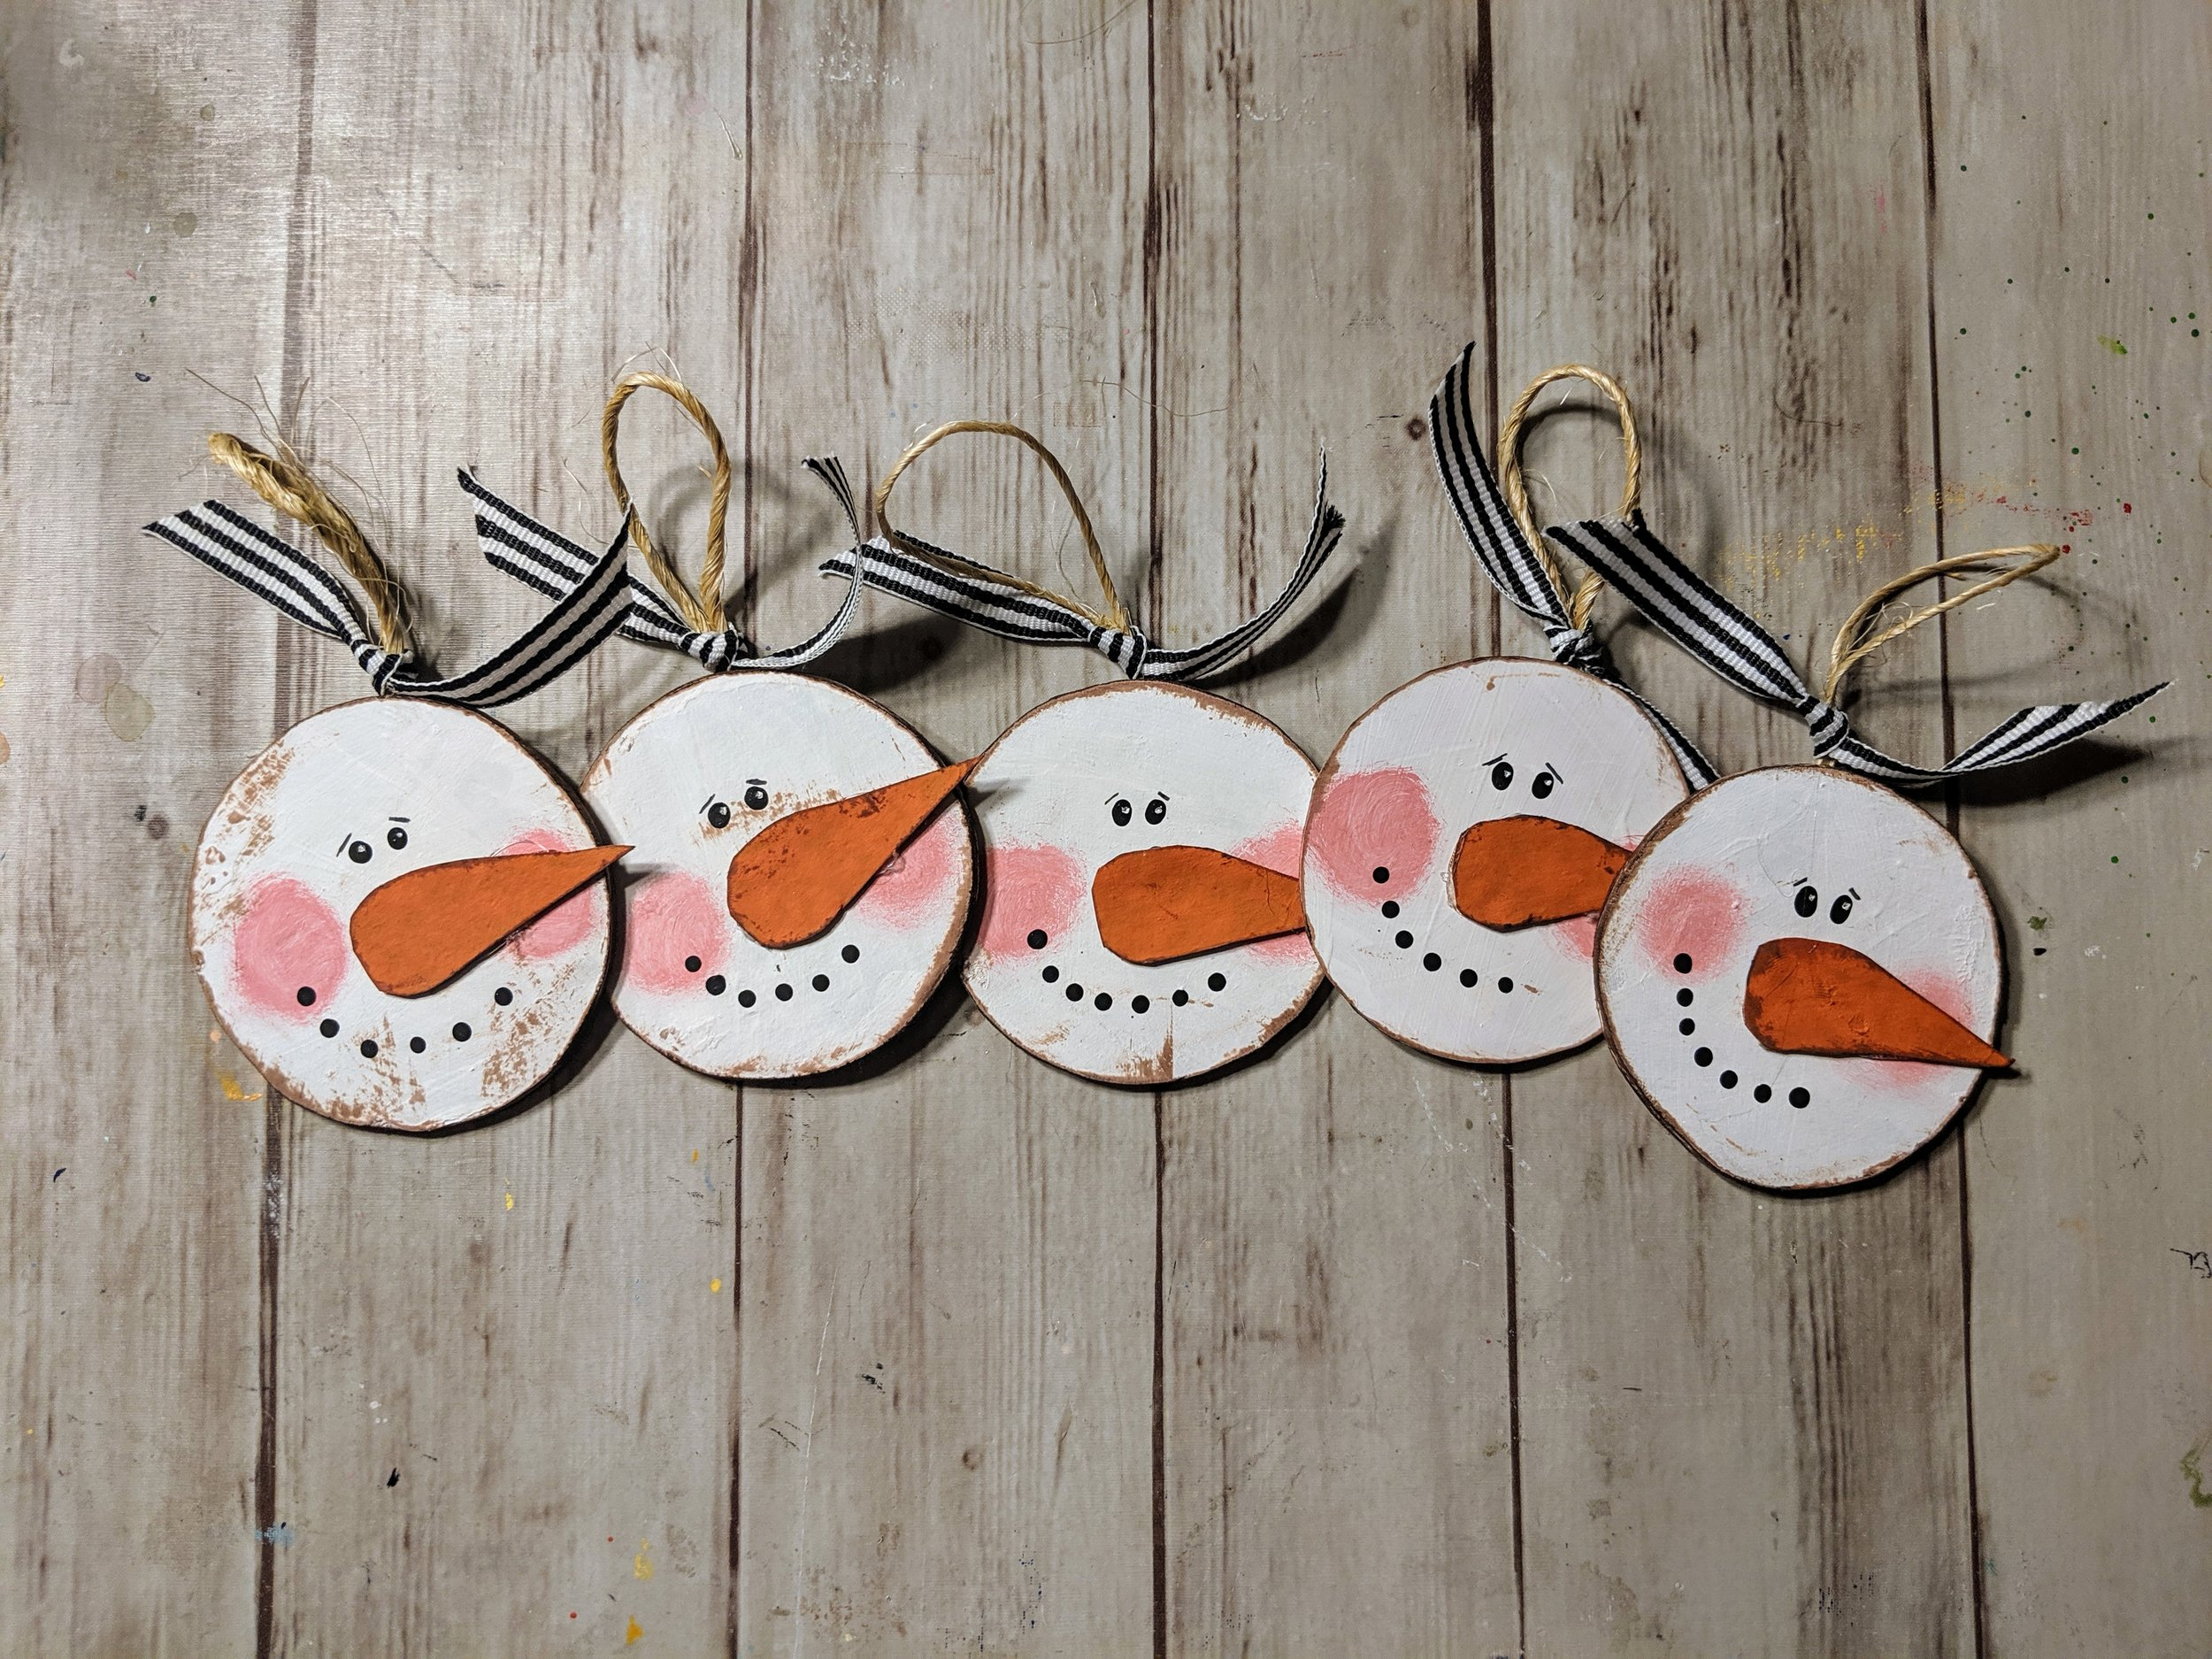 Adorable little snowman ornaments are all handmade from recycled paperboard and decorated with an eye catching black and white ribbon.